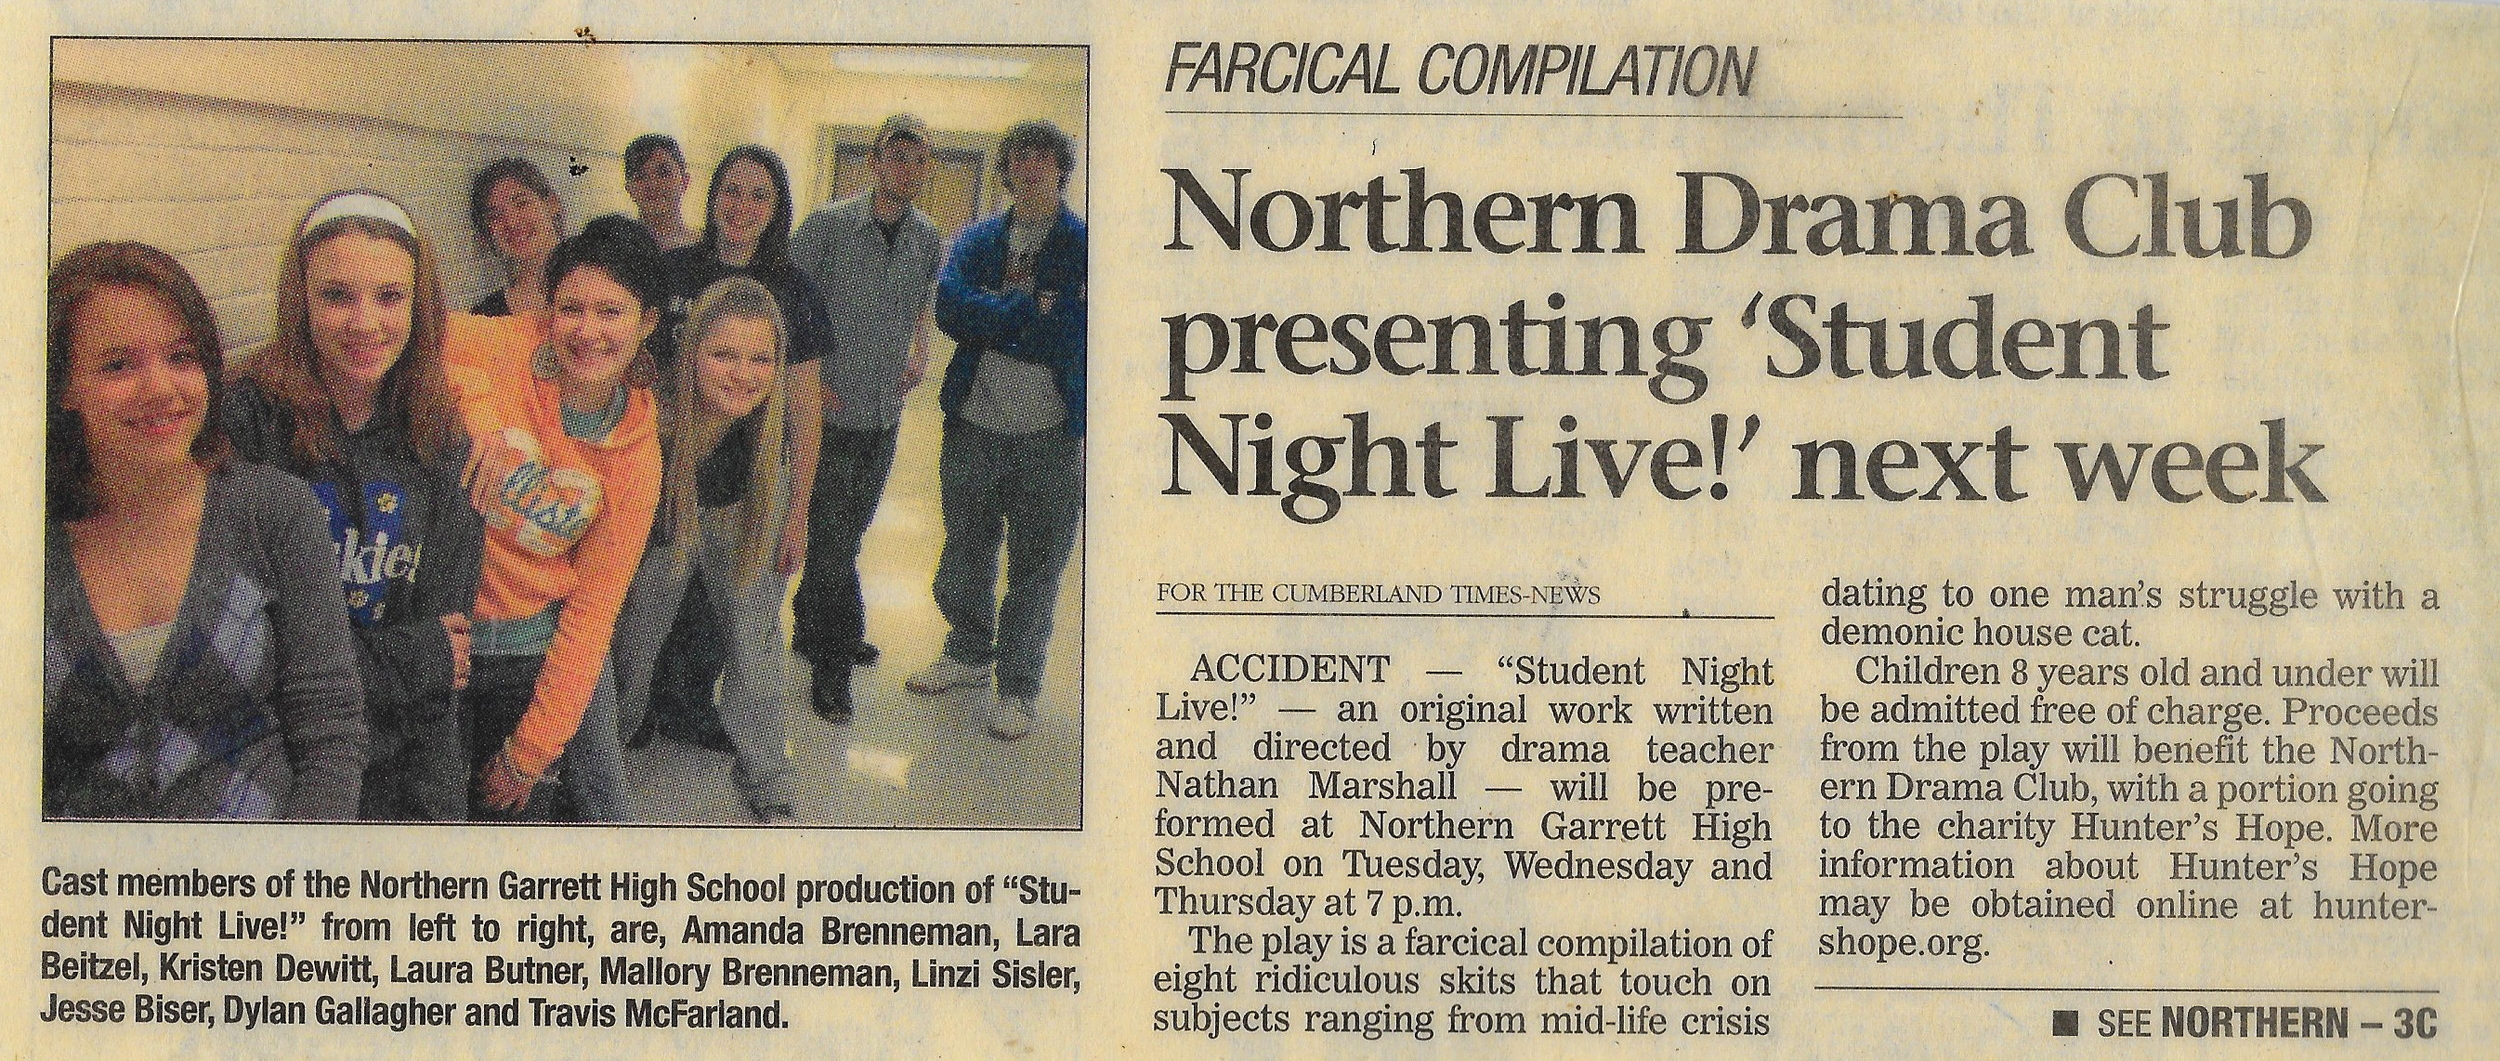 OUR FIRST EVER PRODUCTION, A PLAY I WROTE ENTITLED STUDENT NIGHT LIVE